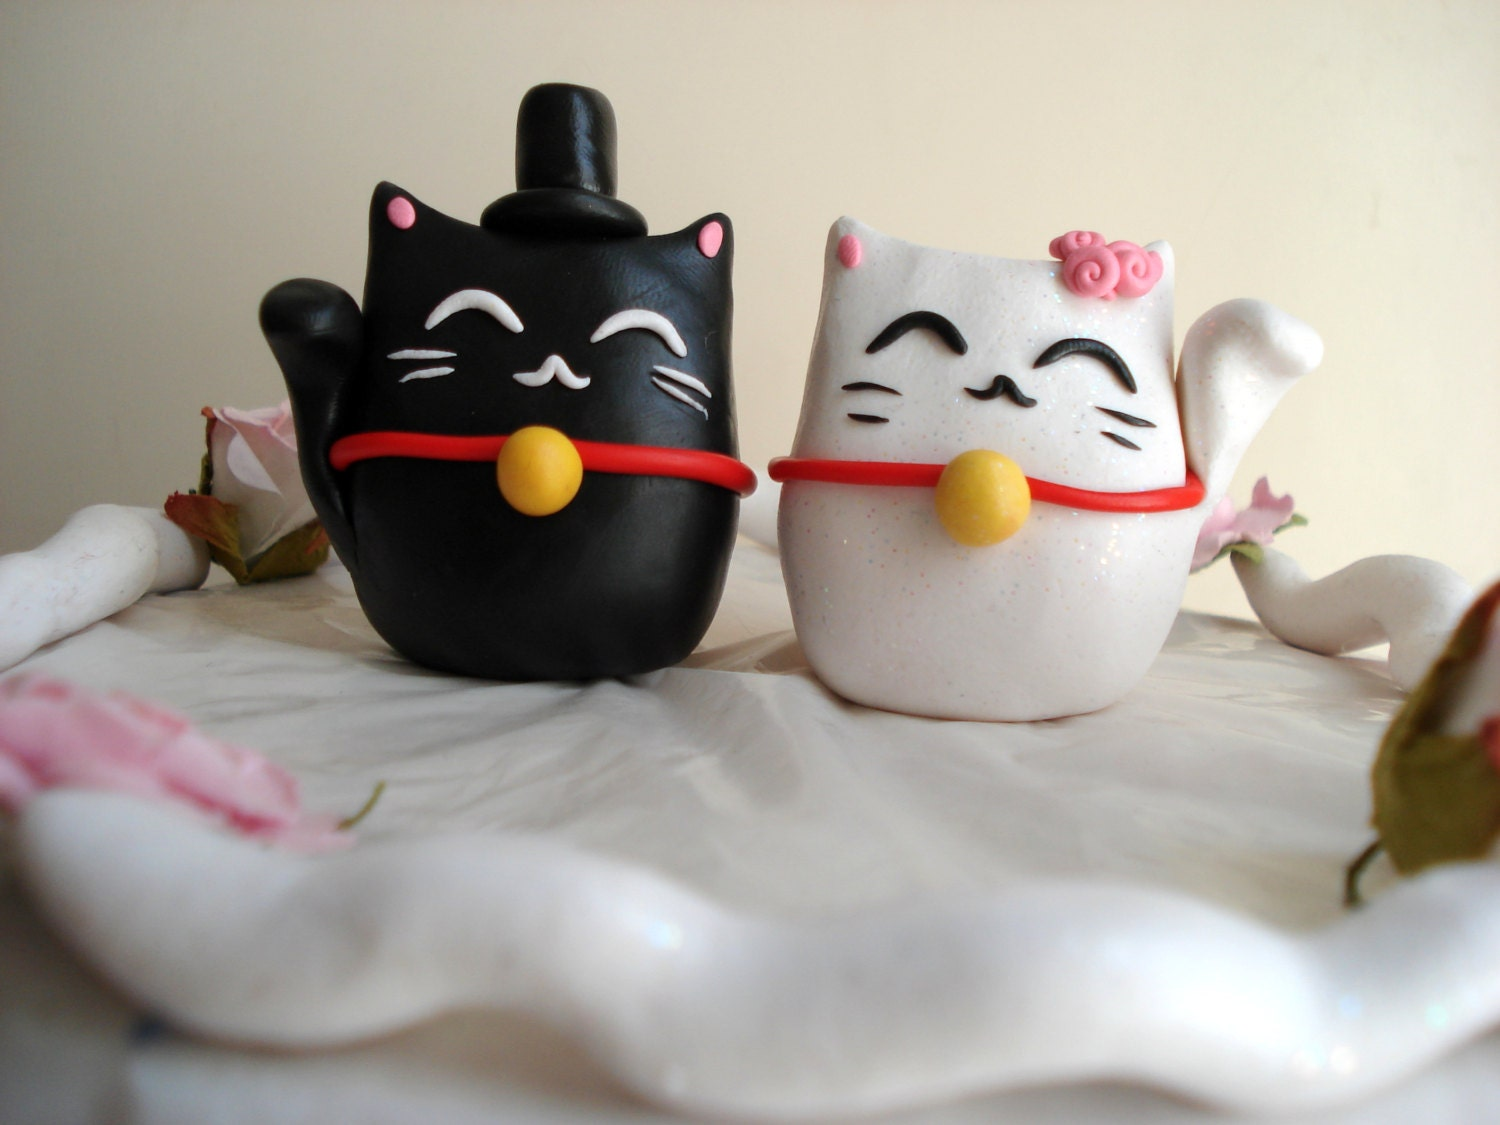 cat wedding cake toppers lucky cat cake toppers wedding decorations cake decor wedding 2519